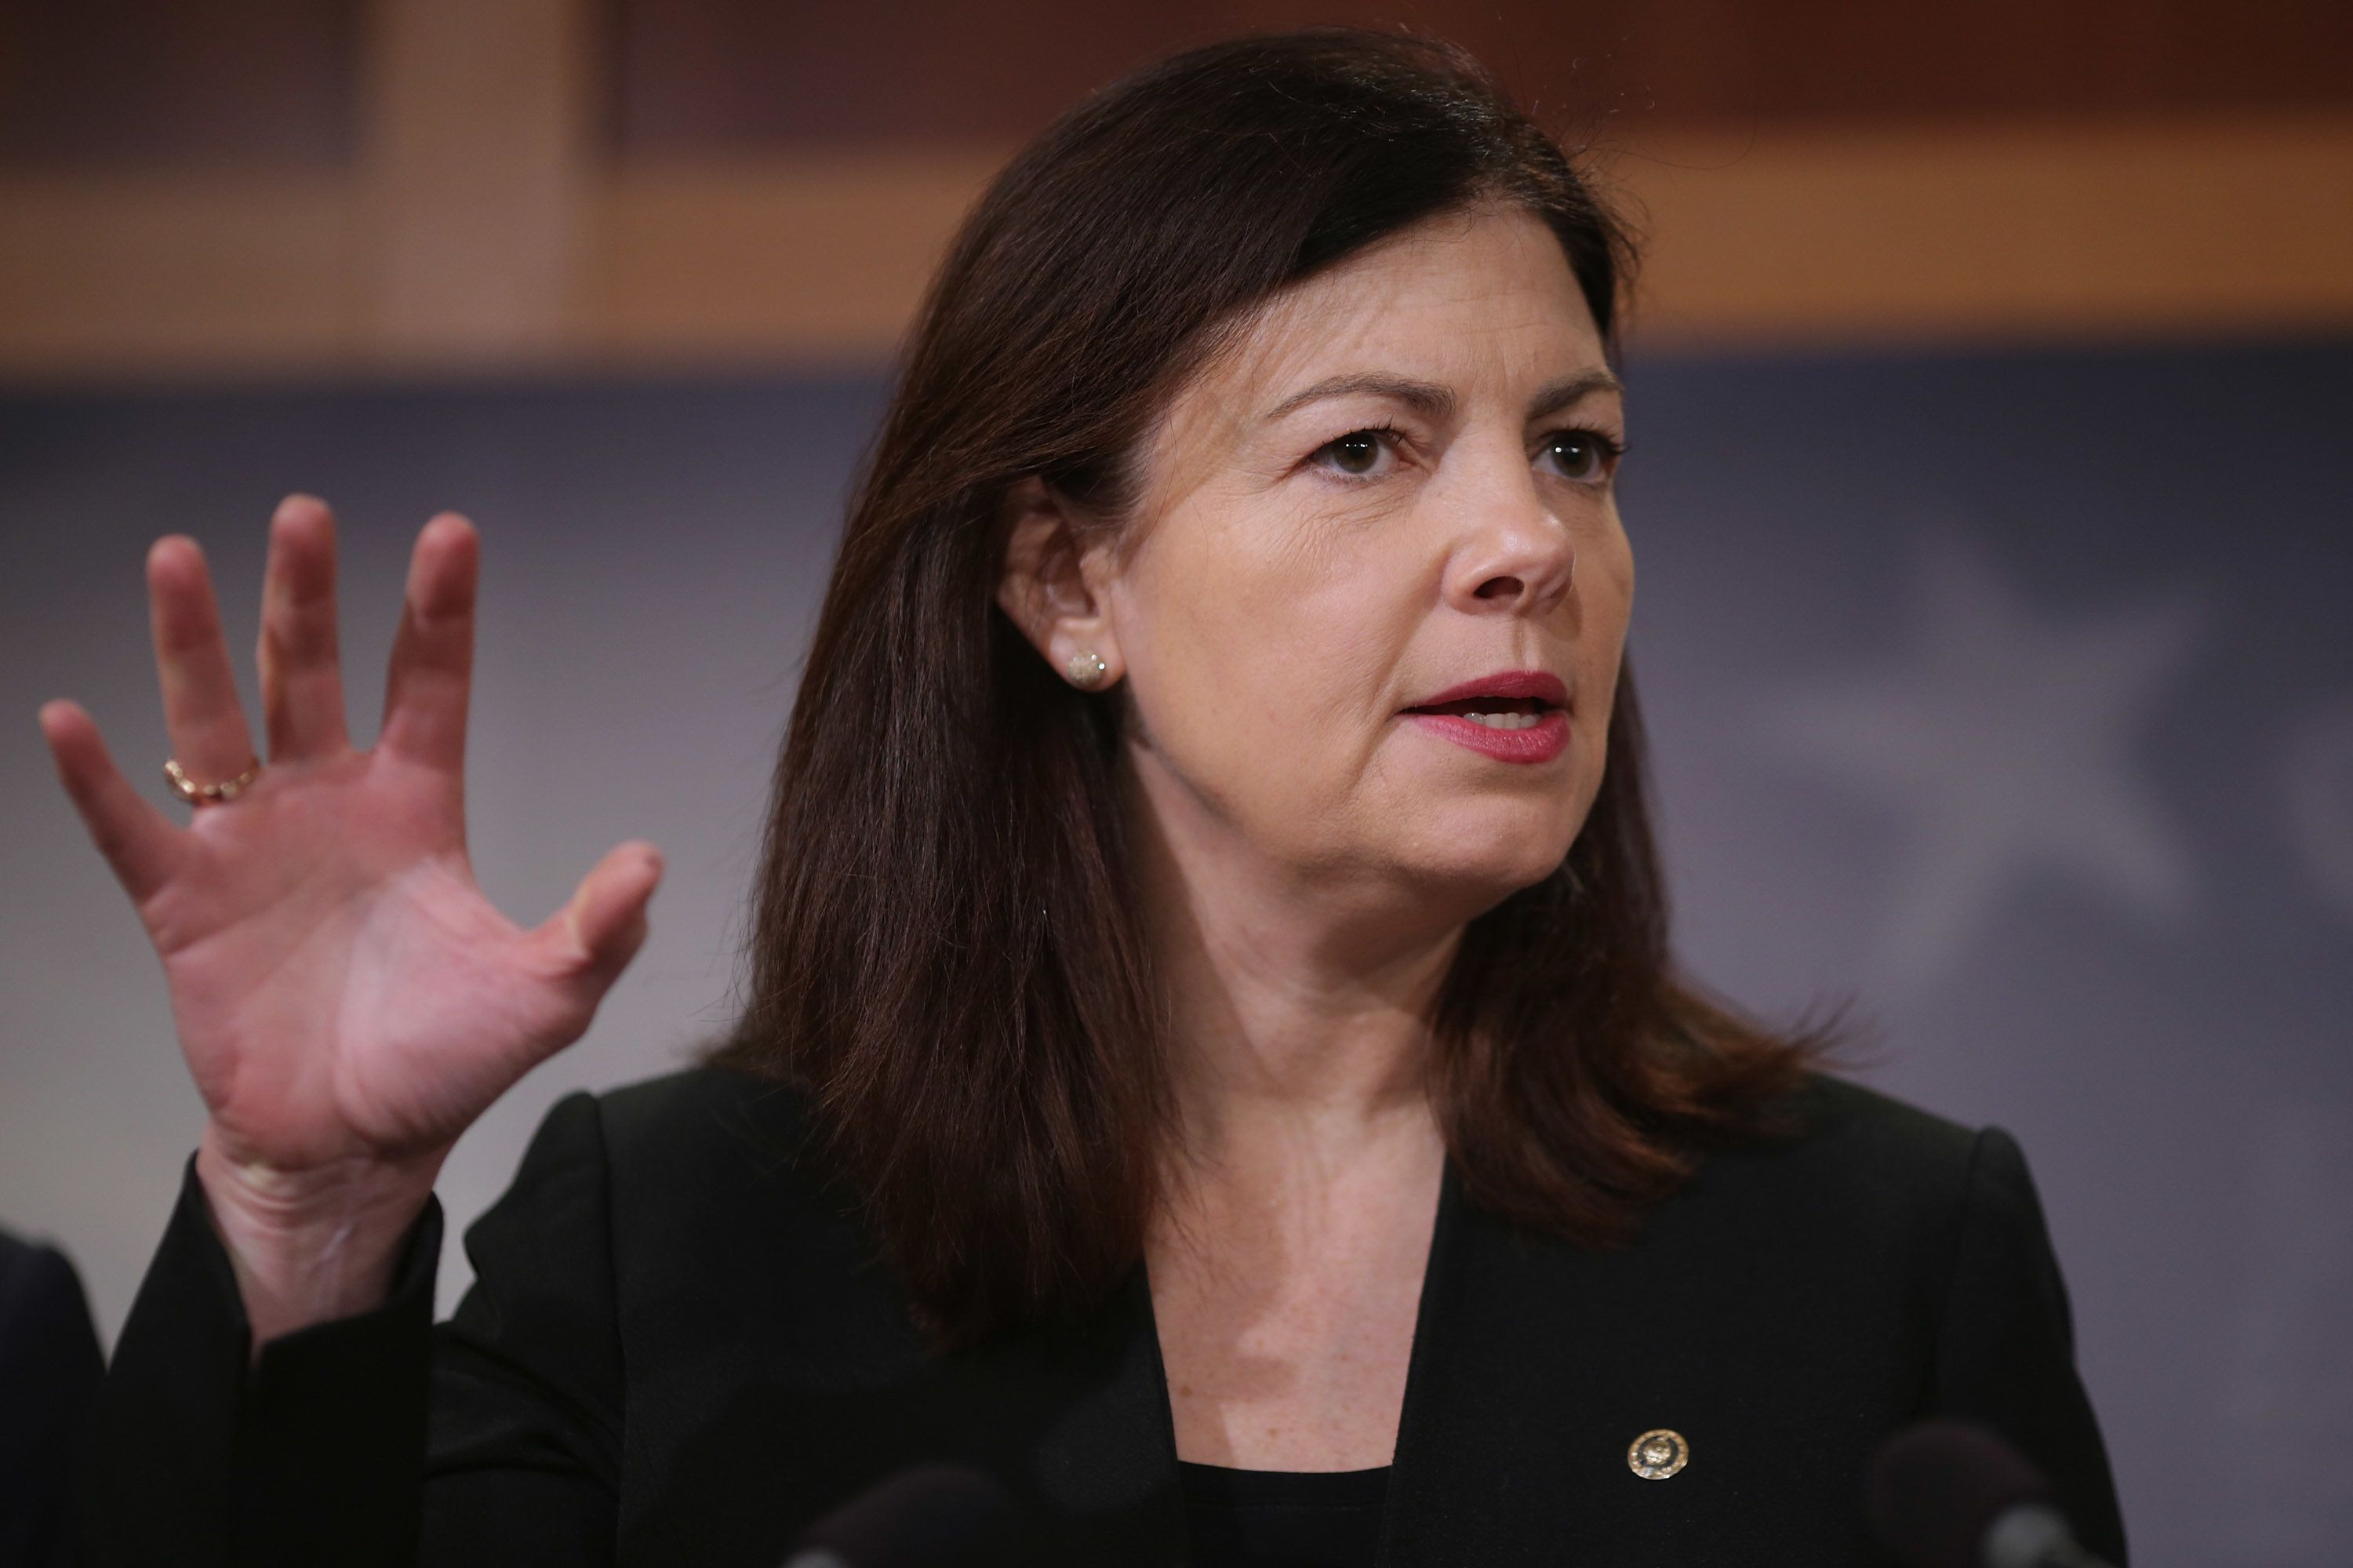 WASHINGTON, DC - FEBRUARY 24:  Senate Armed Services Committee member Sen. Kelly Ayotte (R-NH) speaks at a news conference at the U.S. Capitol February 24, 2016 in Washington, DC. The Republican Senators held the conference to speak about President Obama's plan to close the military prison at Guantanamo Bay, Cuba. They called the president's plan 'jibberish,' and said they have tried working with Obama to close the detention camp and move the terrorism suspects held there to federal prisons in the United States but this latest proposal is not the way forward. (Photo by Chip Somodevilla/Getty Images)